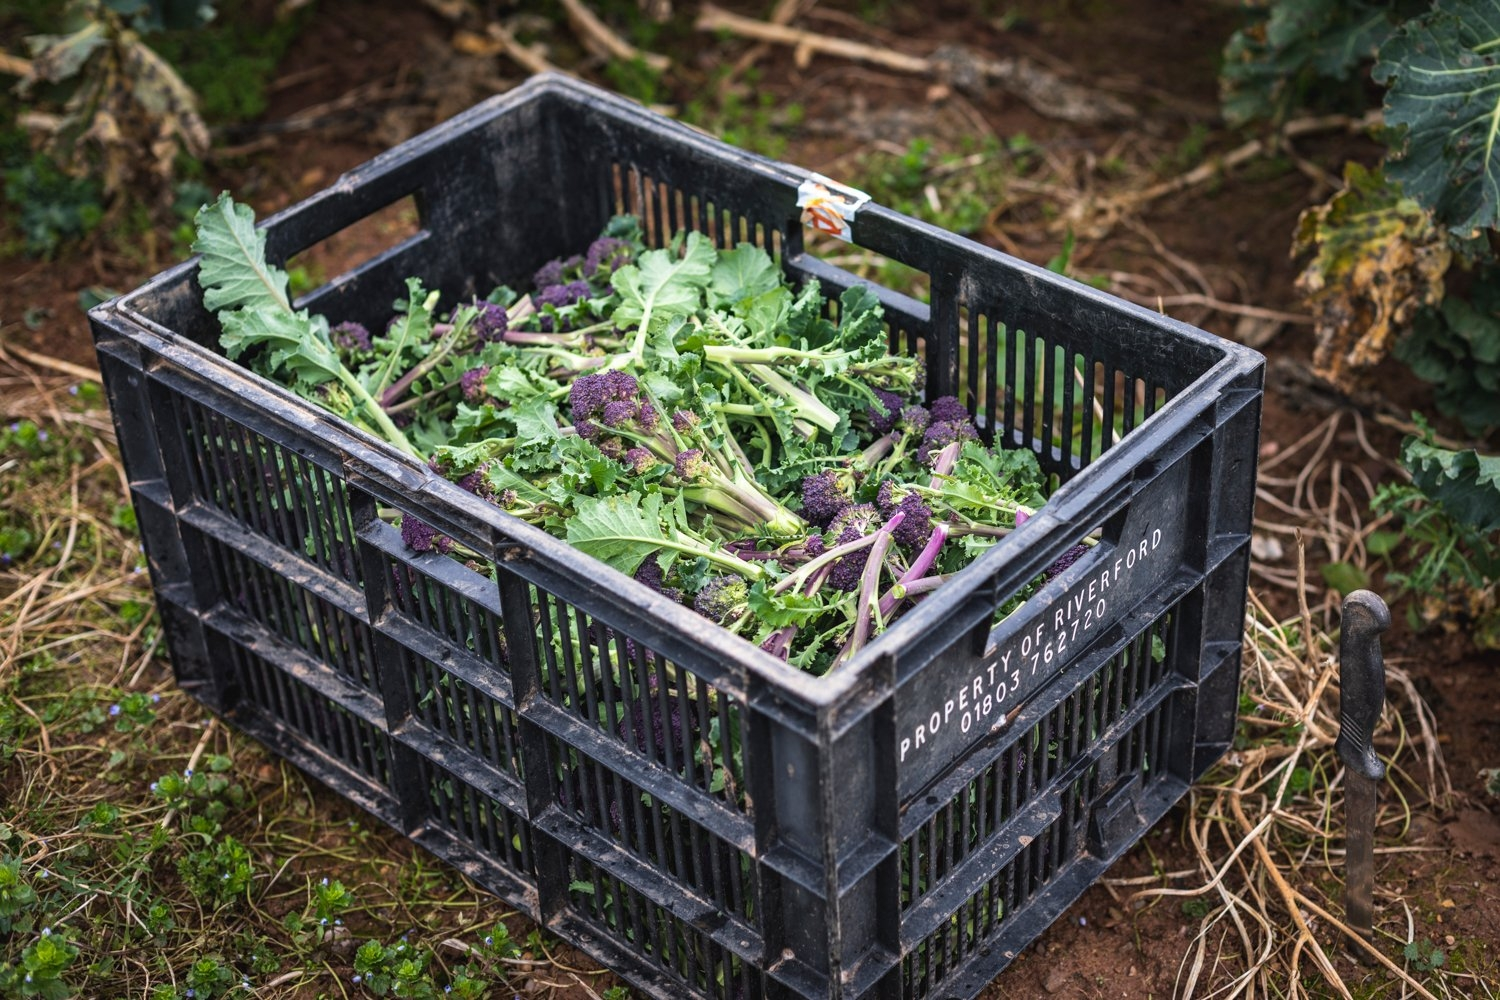 Freshly picked organic purple sprouting broccoli